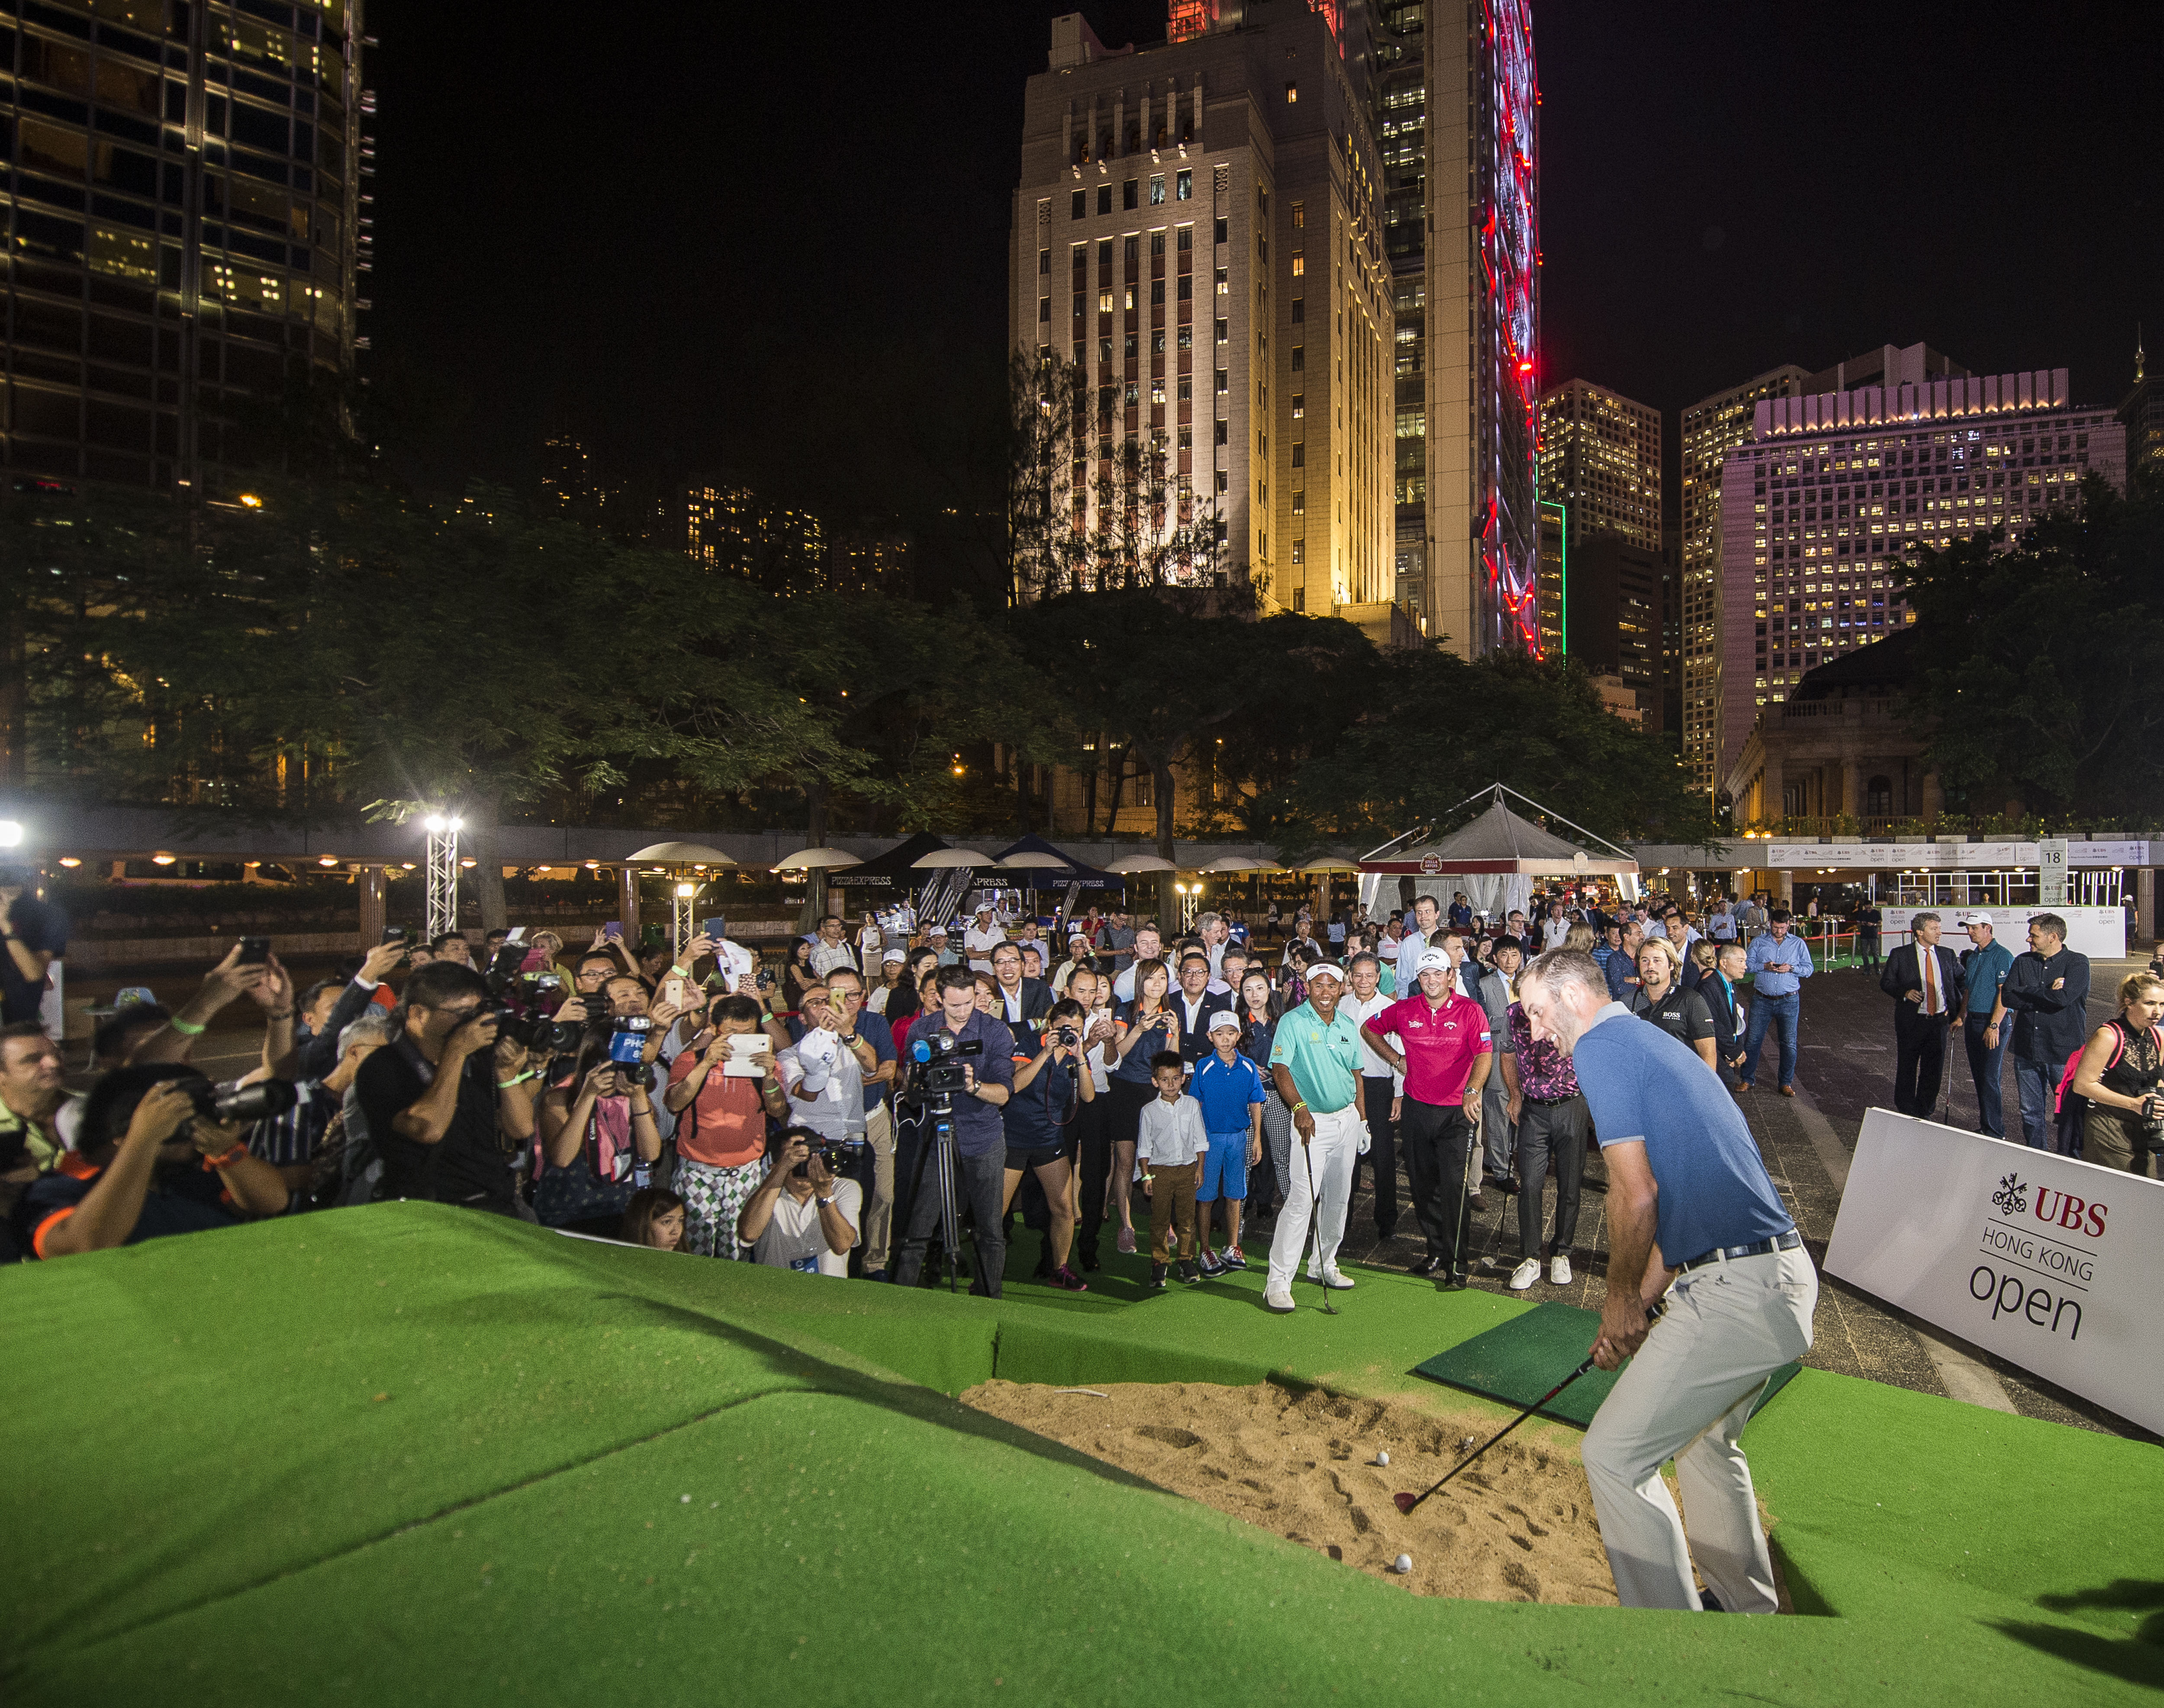 The next event will be night putting